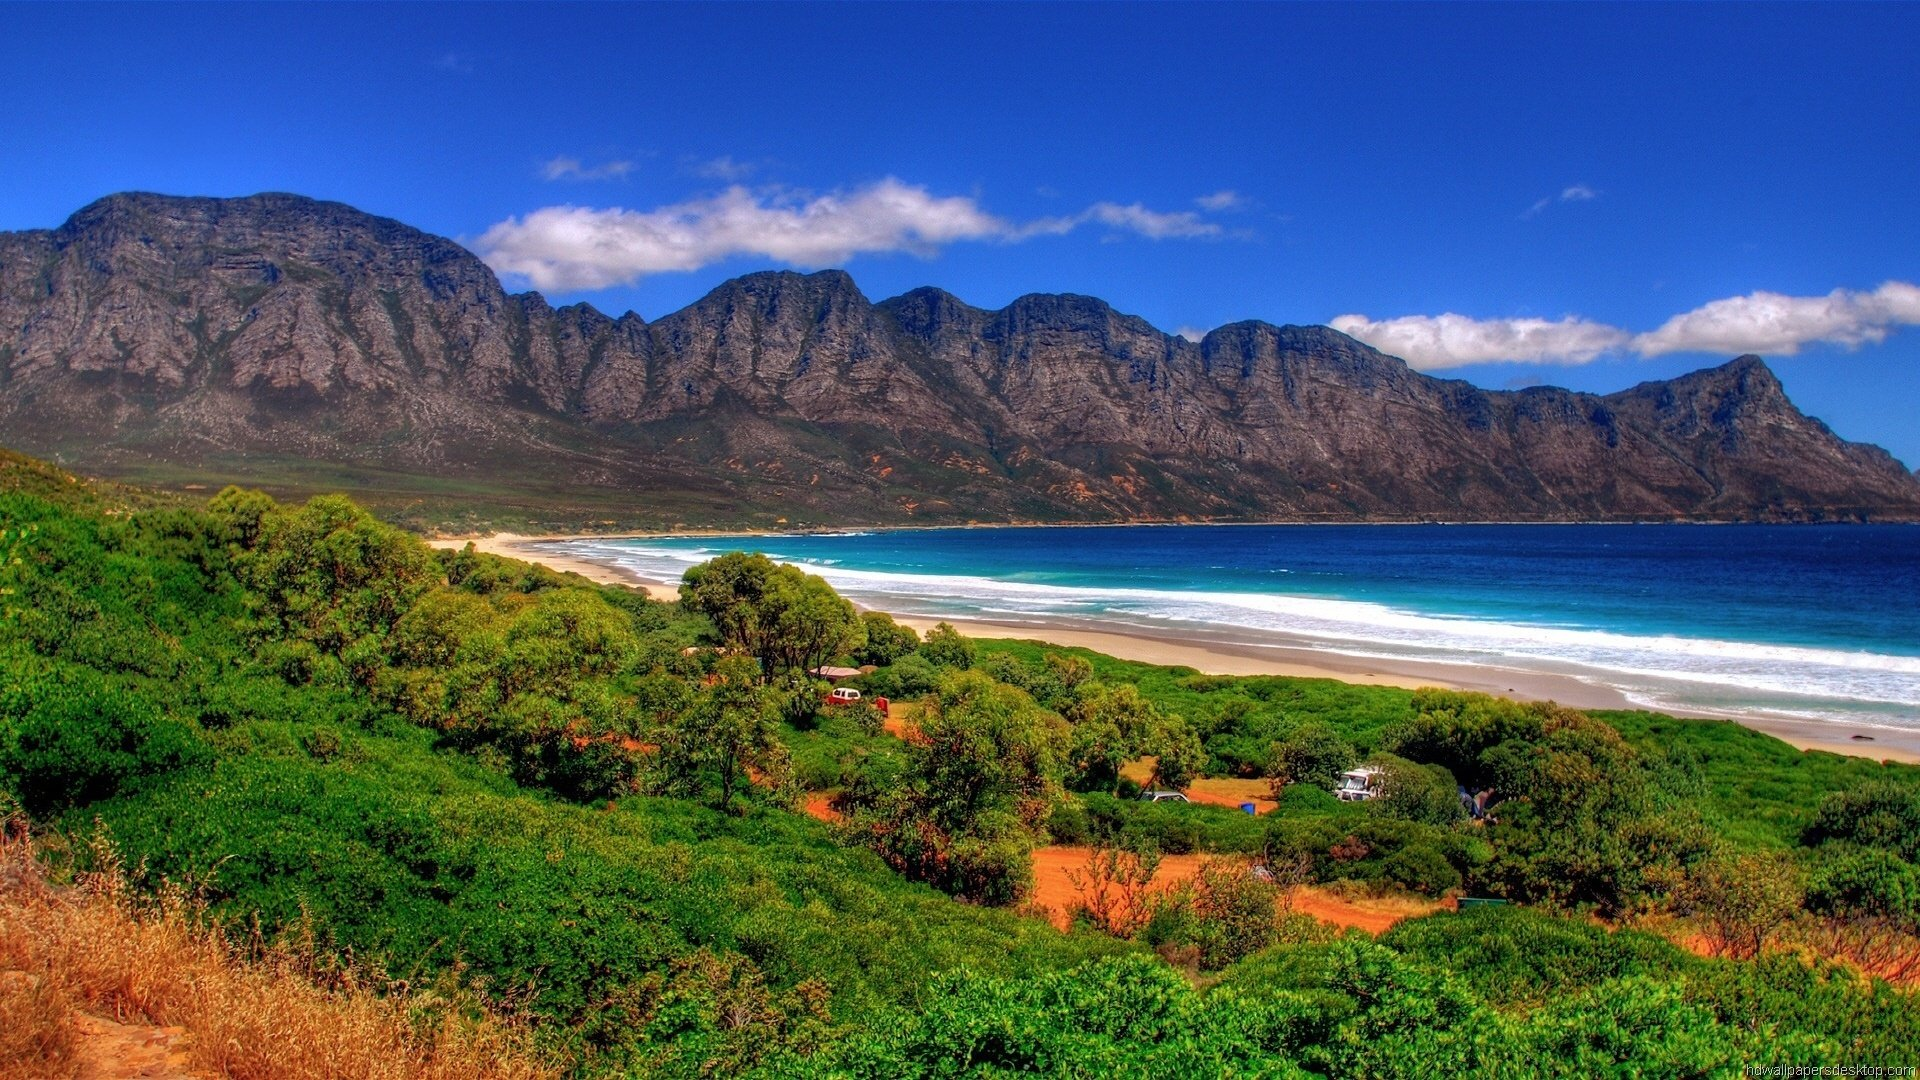 South African Beach Wallpapers   1920x1080   1055911 1920x1080